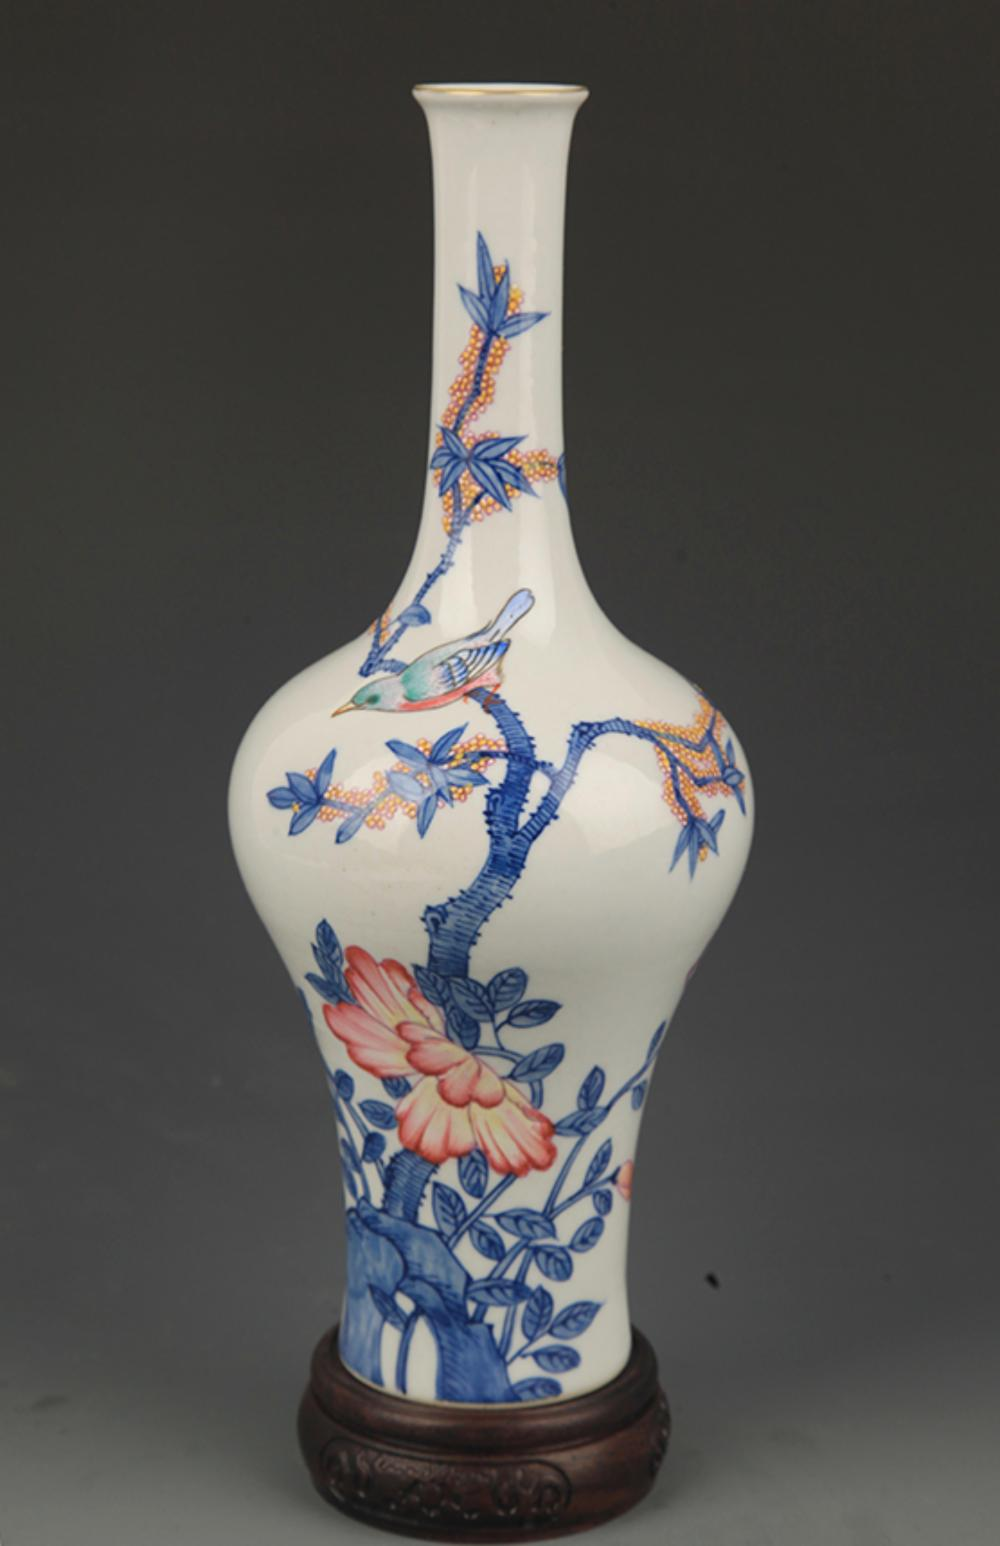 A RARE BLUE AND WHITE FAMILLE ROSE FLOWER AND BIRD PATTERN BOTTLE